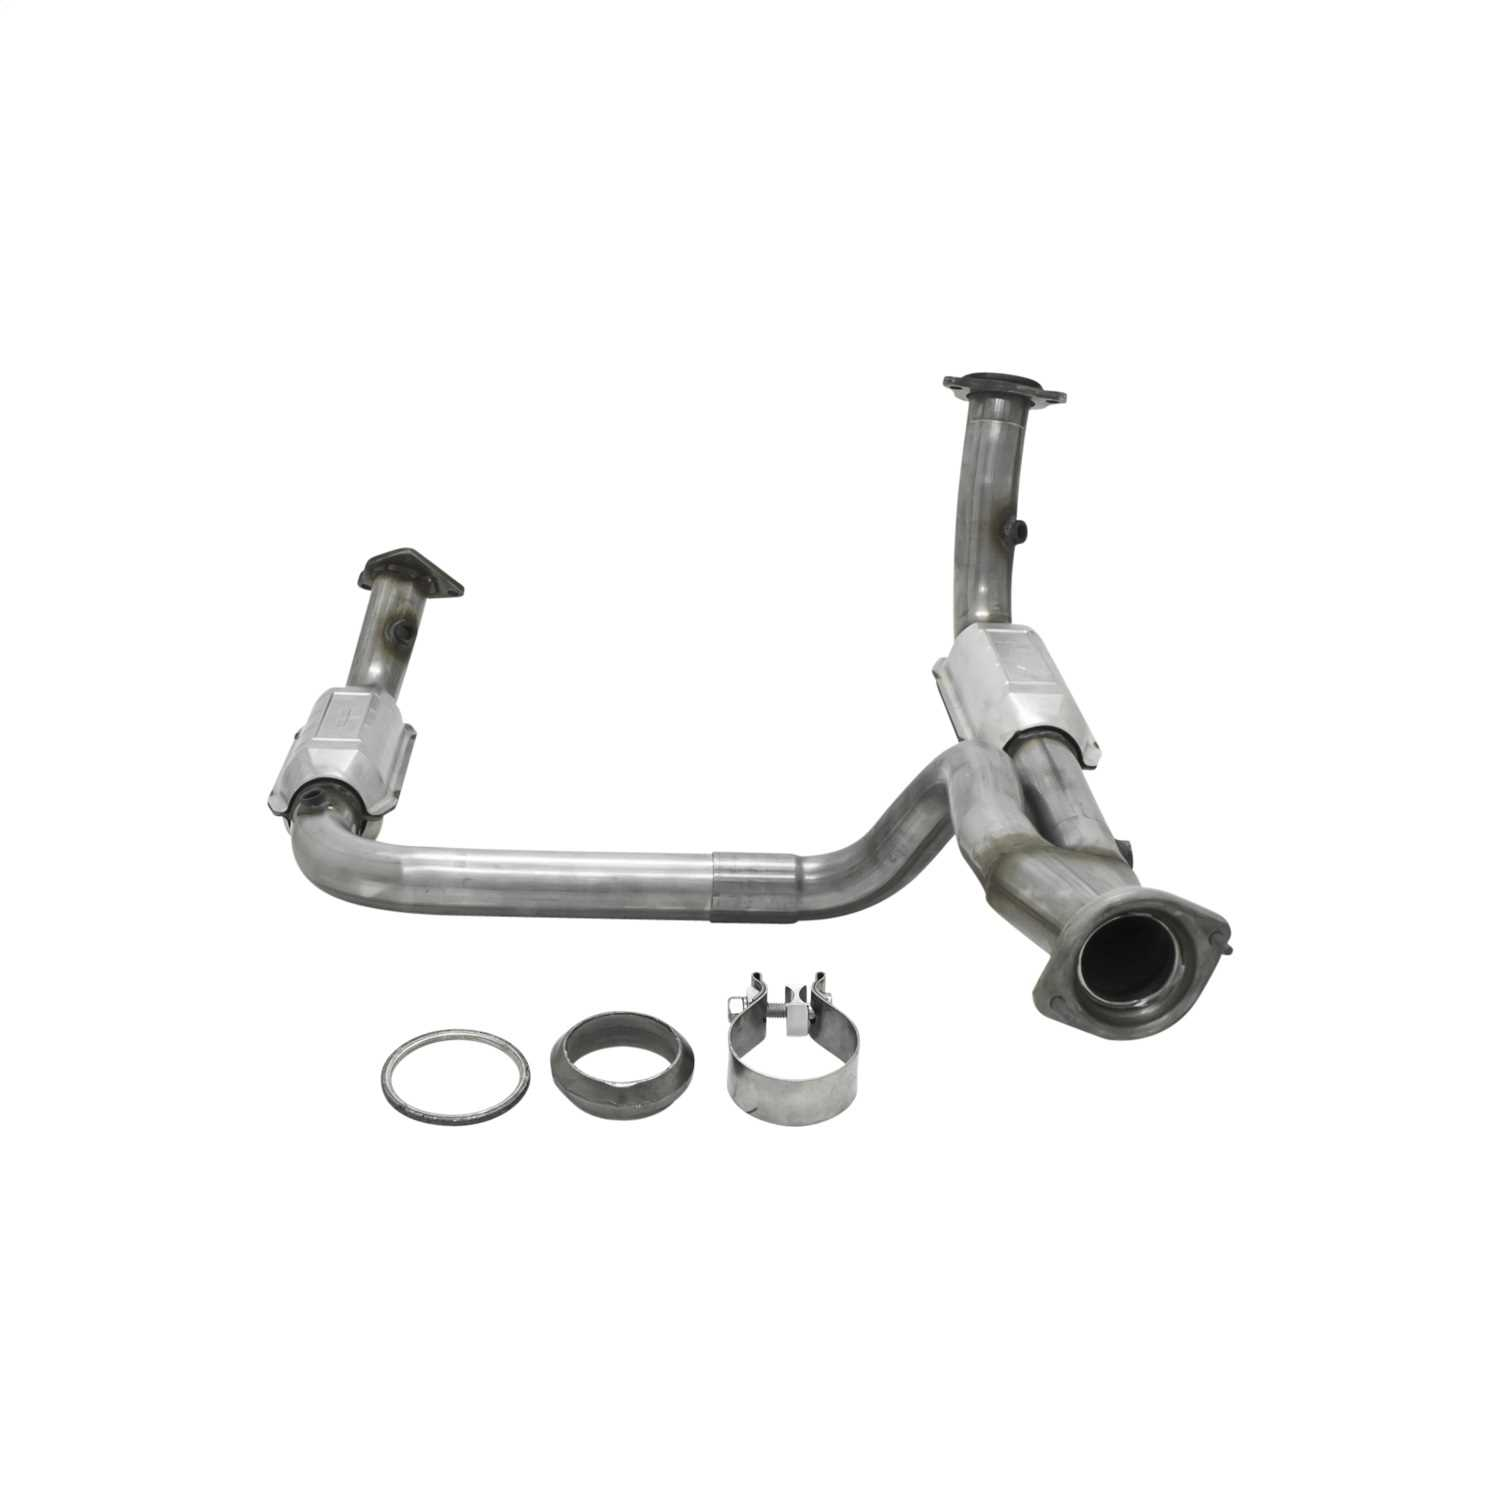 2010019 Flowmaster 49 State Catalytic Converters Direct Fit Catalytic Converter